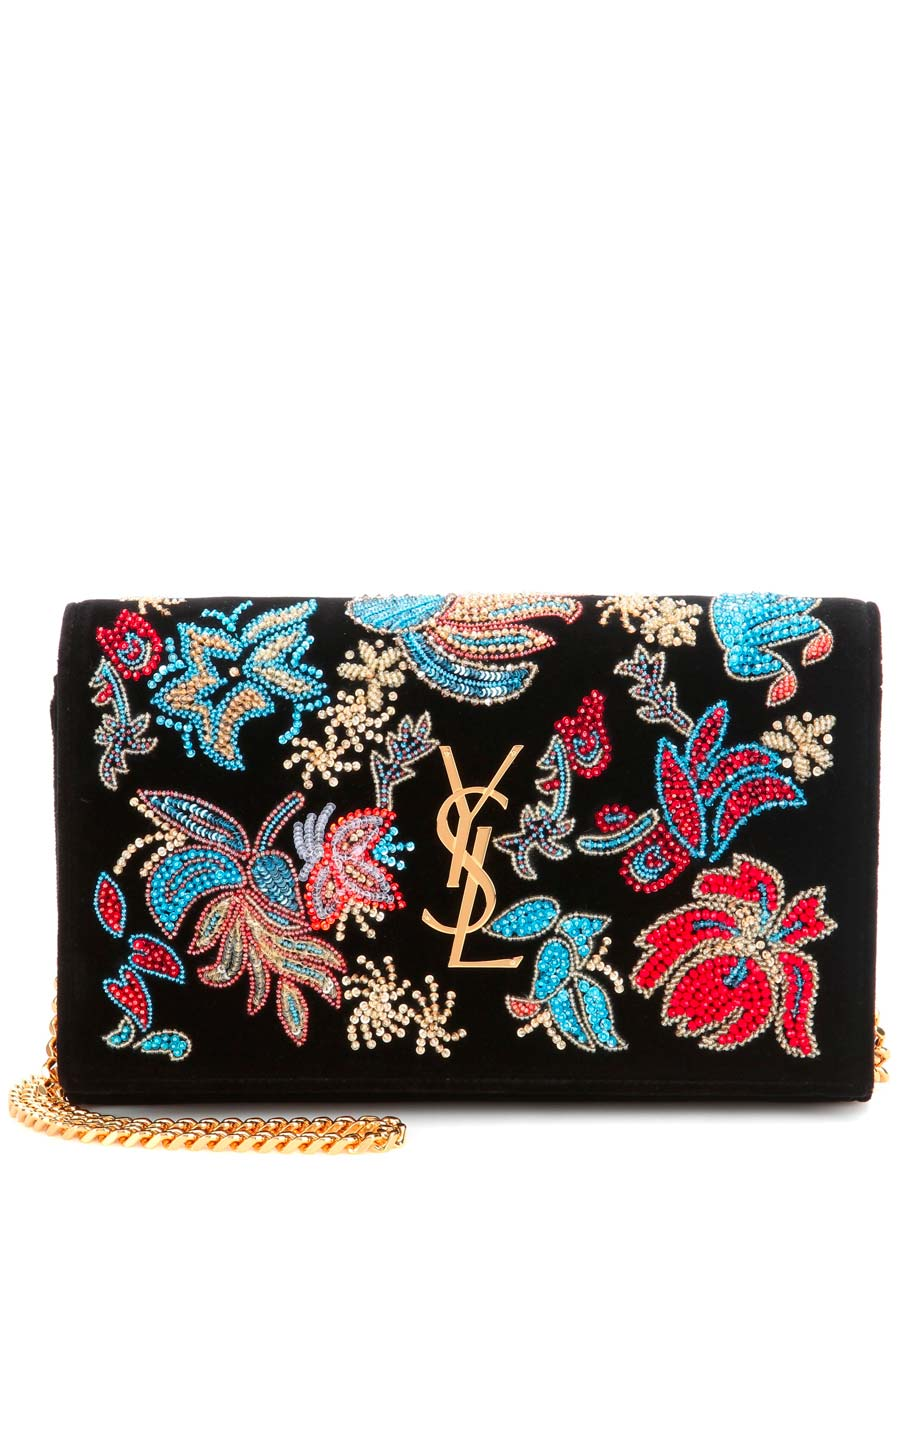 velluto - NEW ARRIVAL SAINT LAURENT Classic Medium Kate Monogram embellished velvet shoulder bag